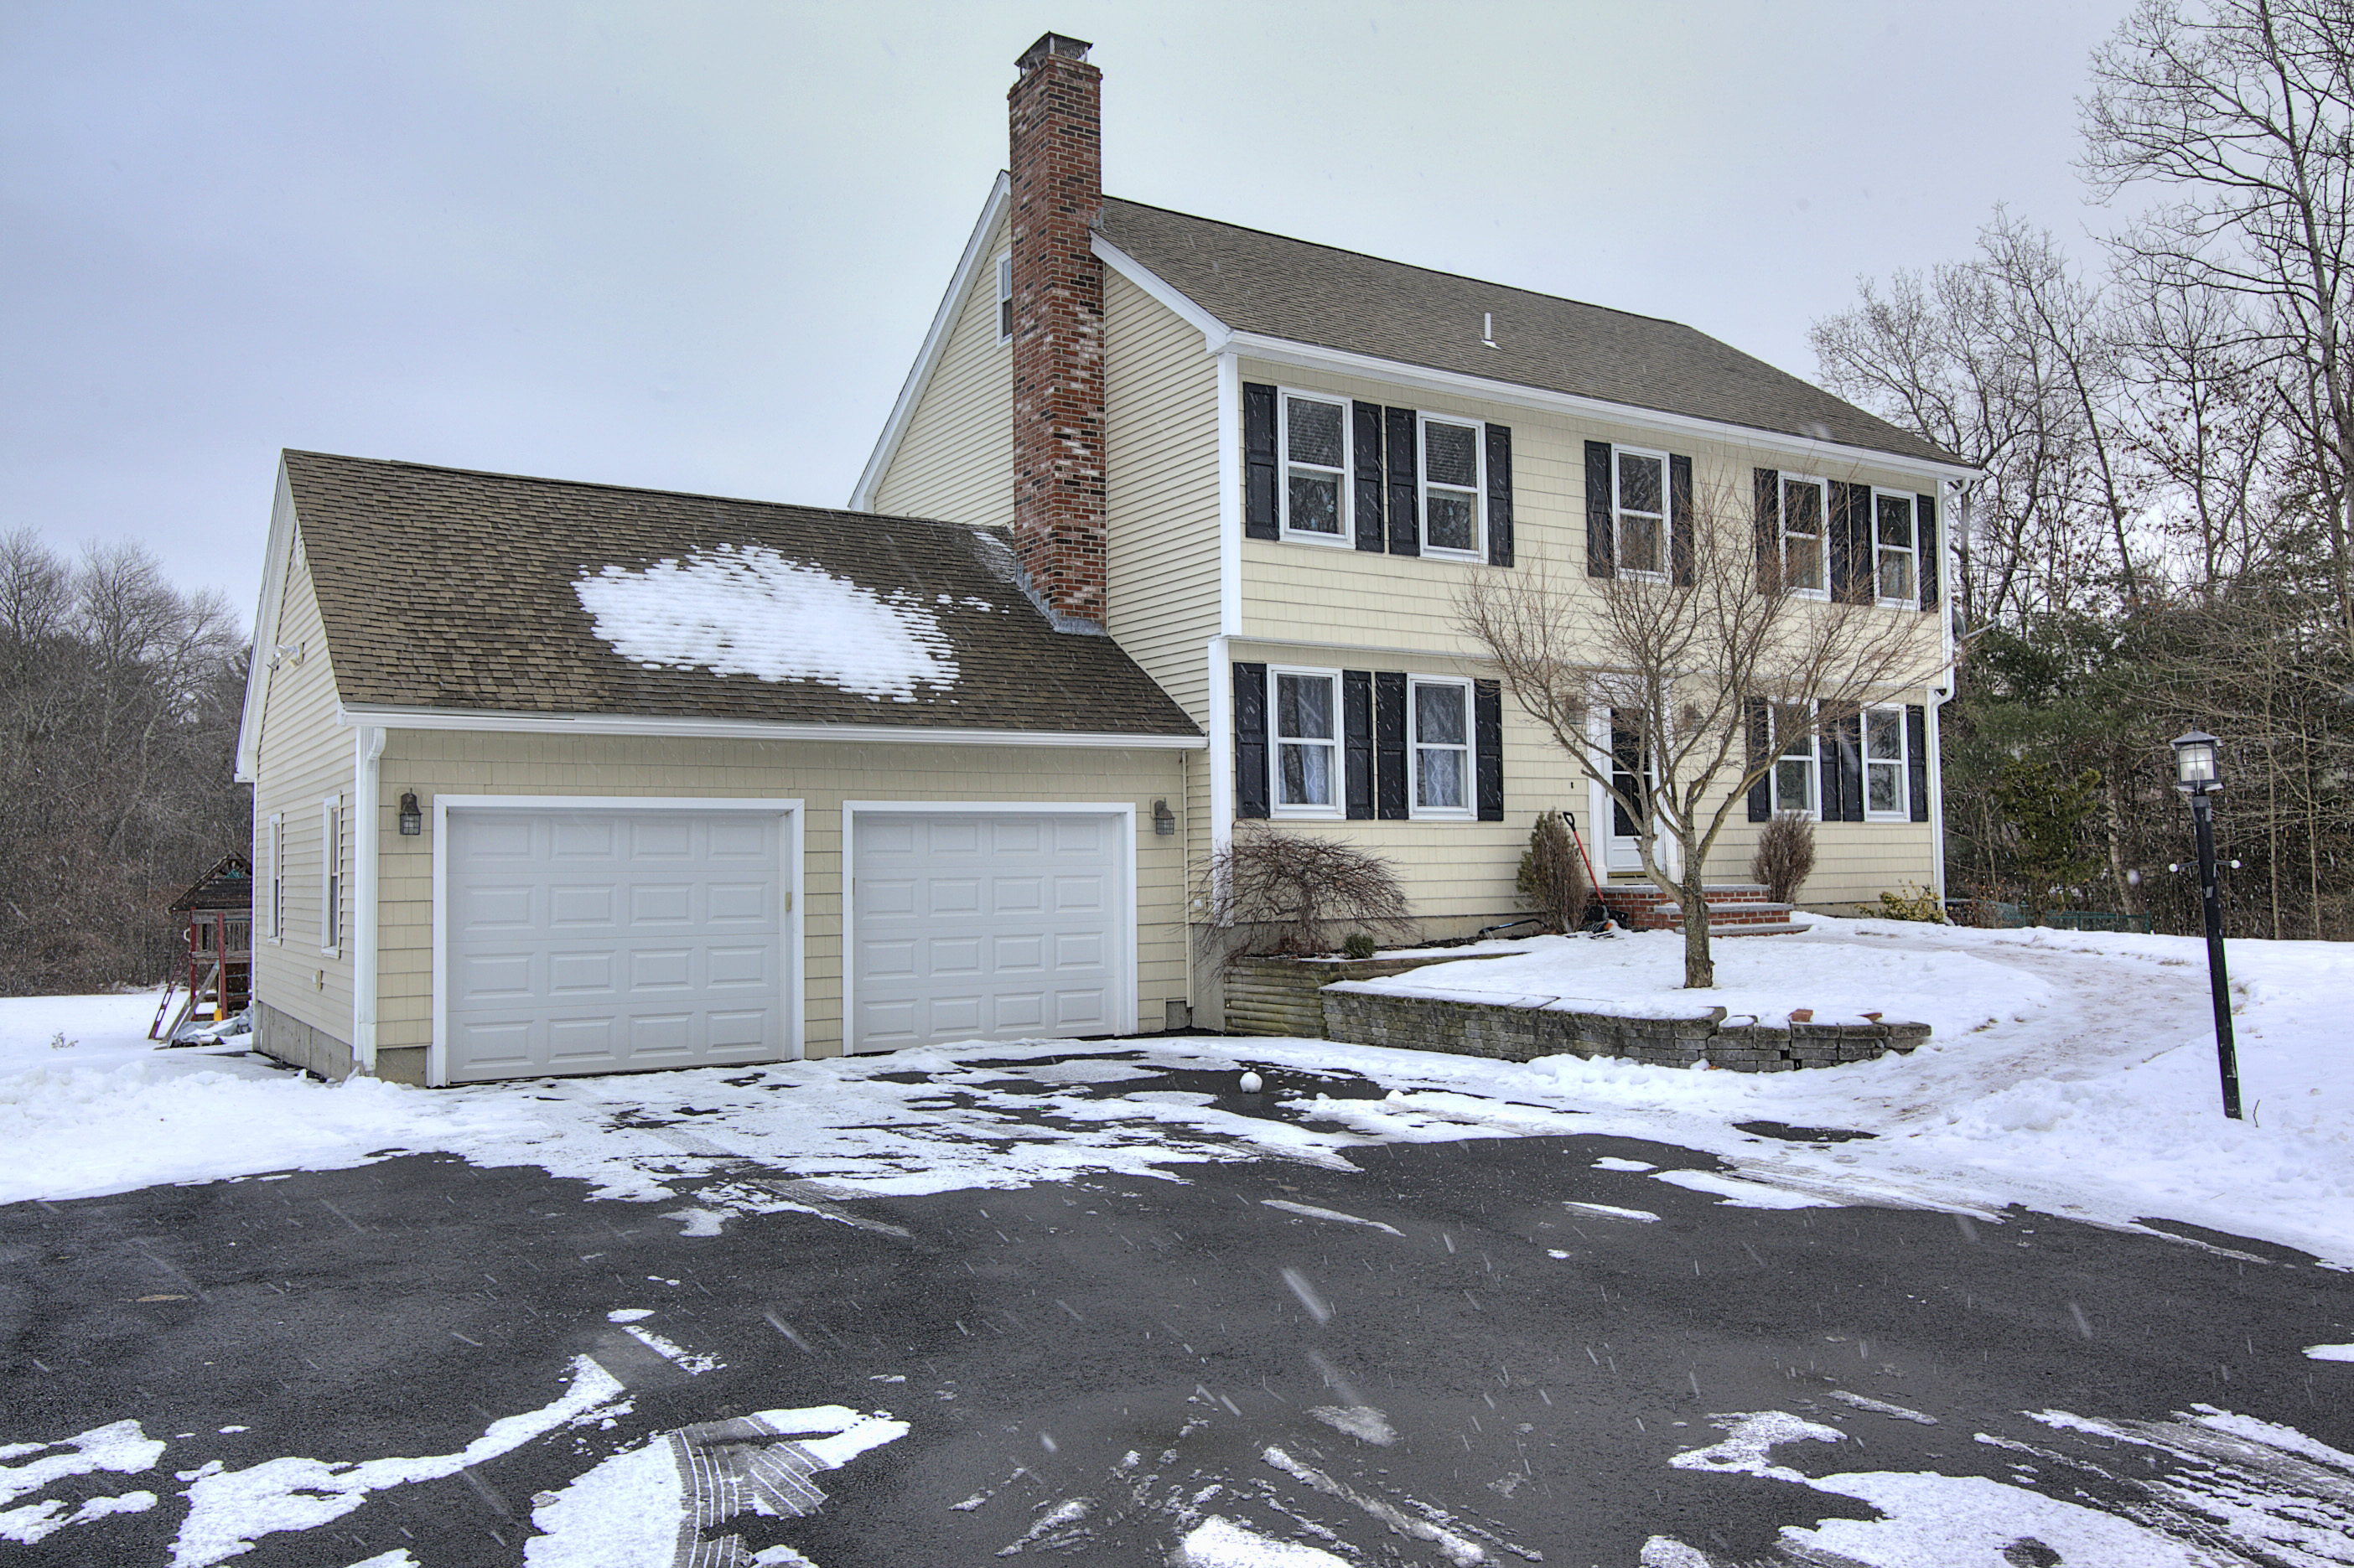 House sold in Windham NH in 10 days in January weather!